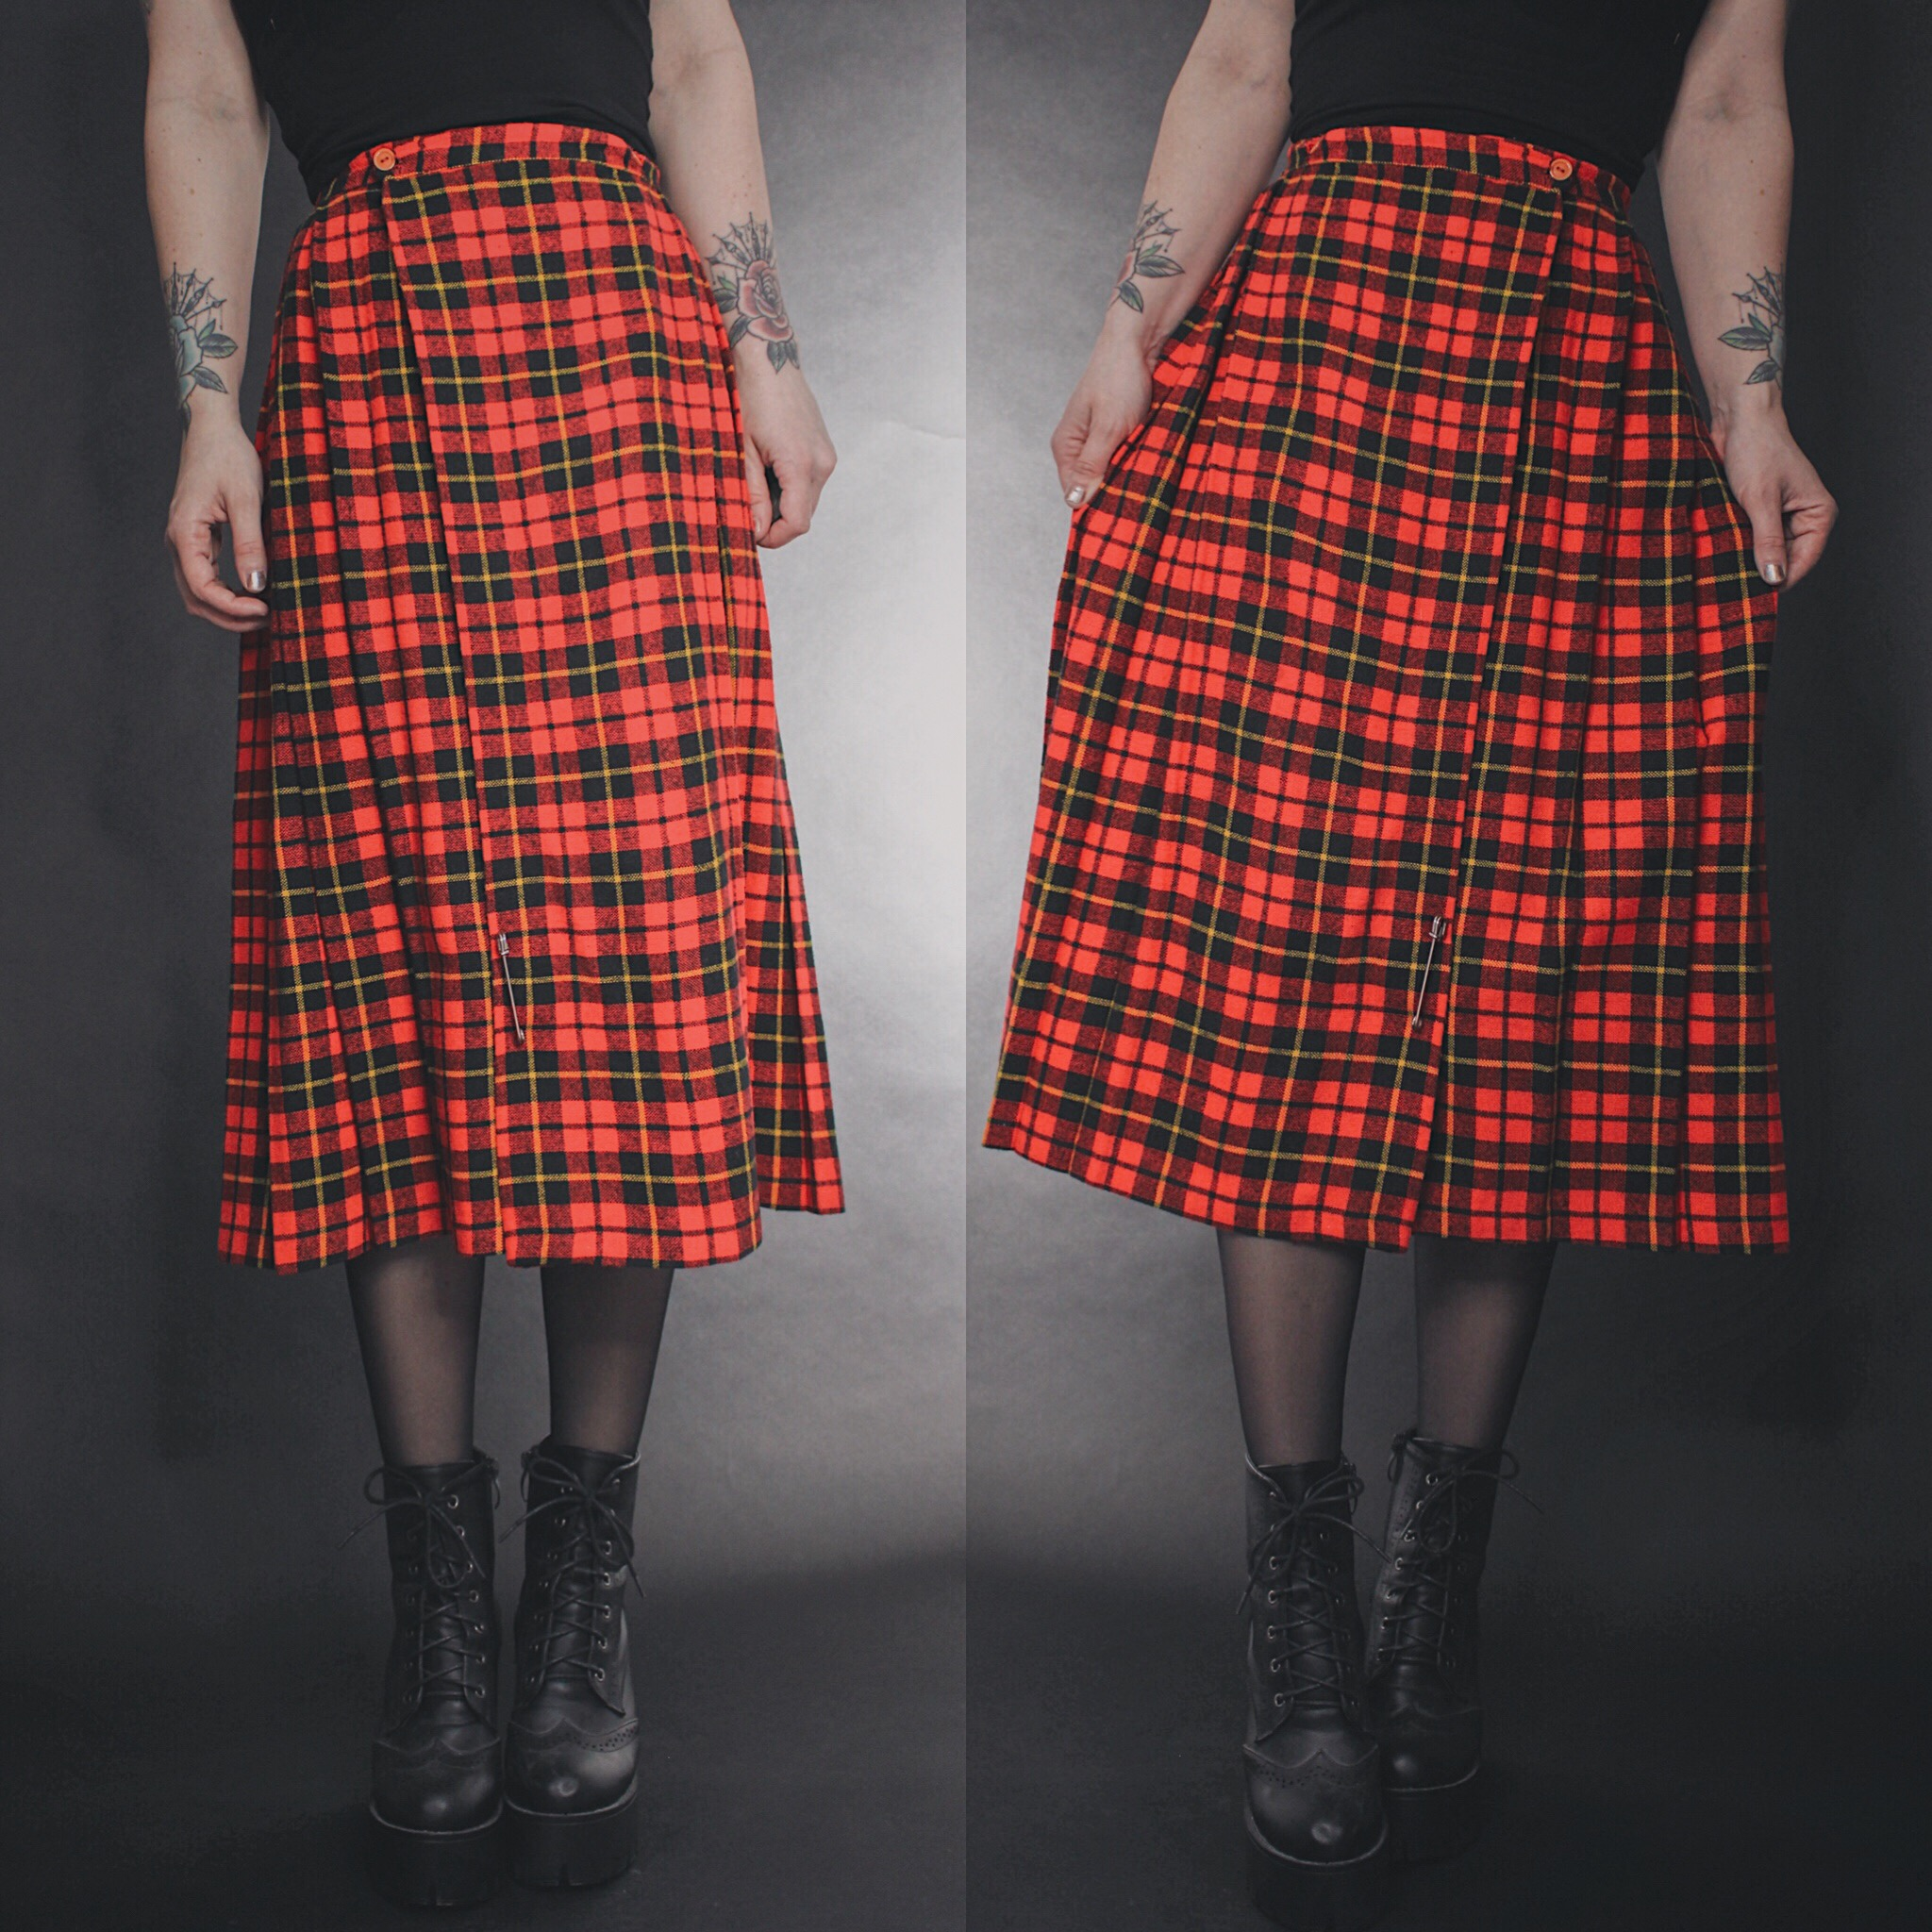 208a63b44 RESERVED FOR MAXX - Vintage 90s Red Plaid Flannel Midi Skirt · Last ...